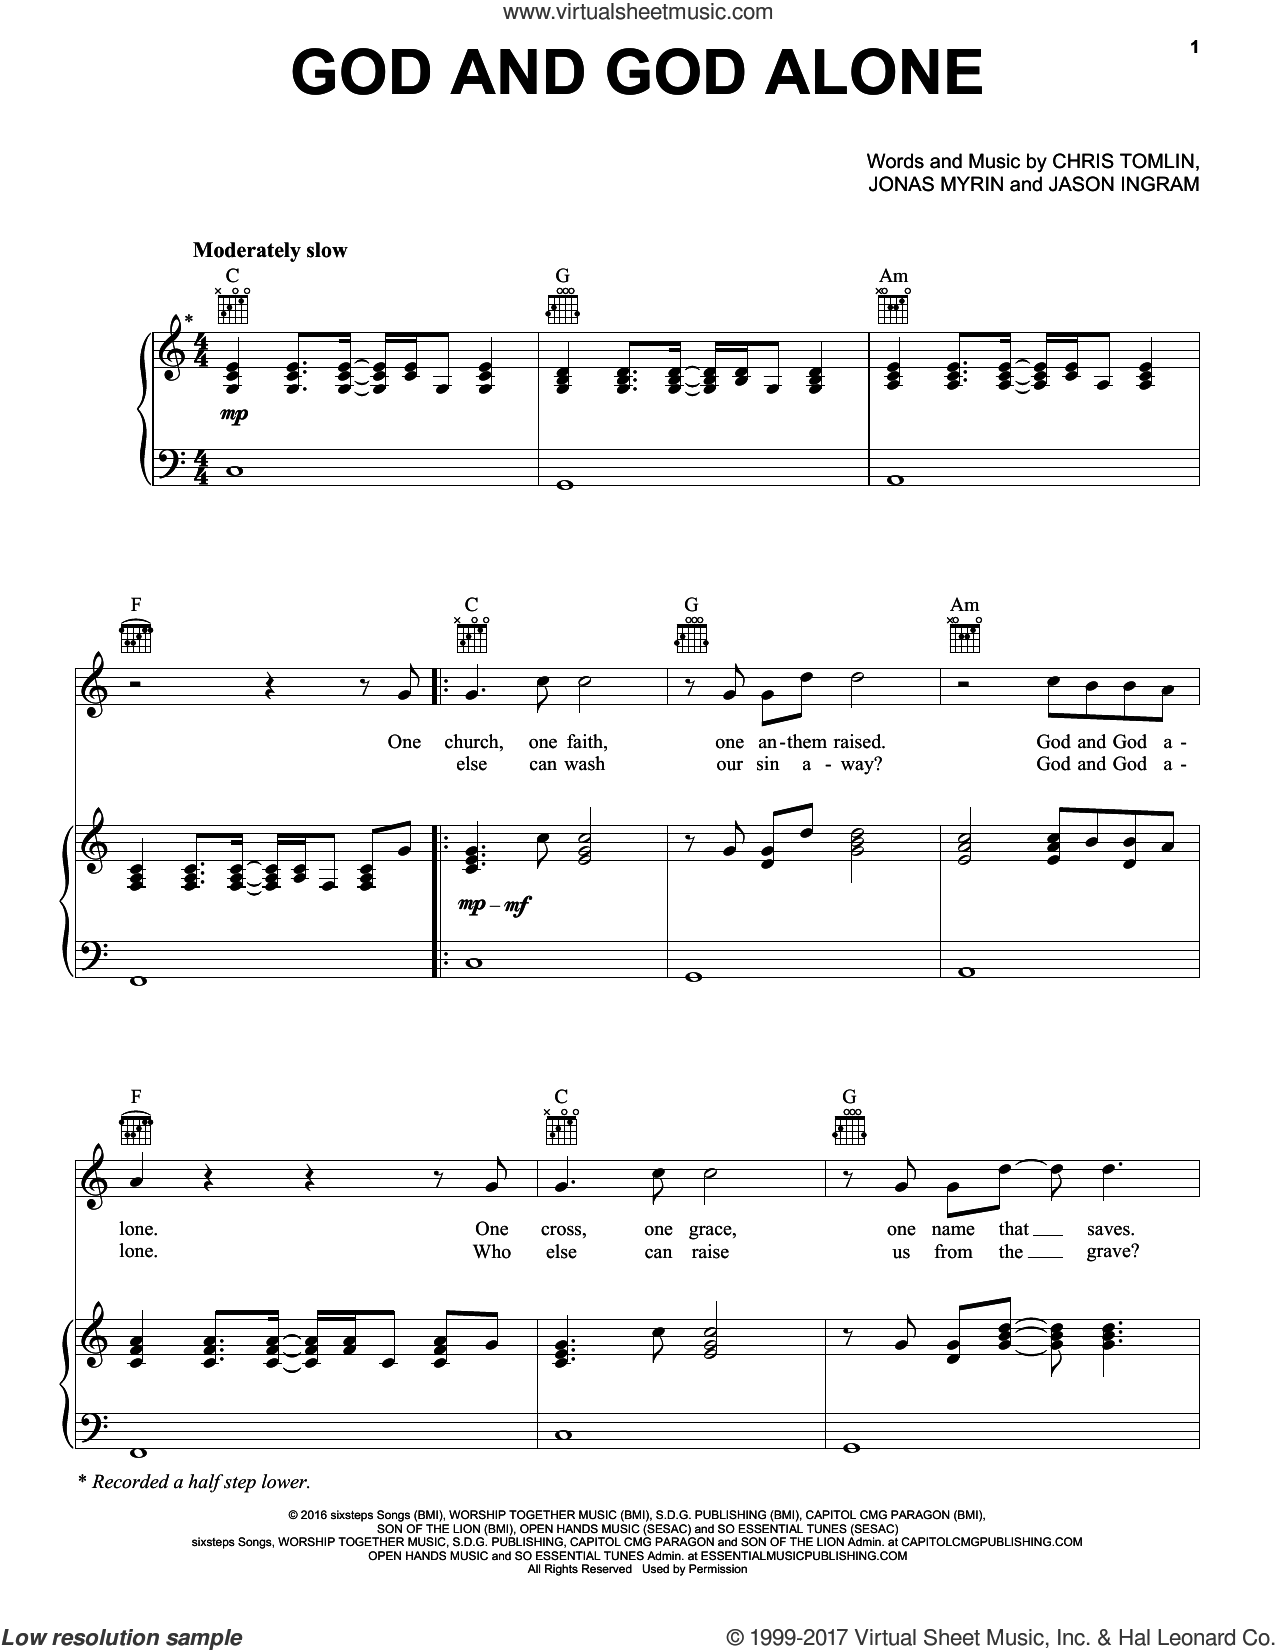 God and God Alone sheet music for voice, piano or guitar by Chris Tomlin, Jason Ingram and Jonas Myrin, intermediate skill level